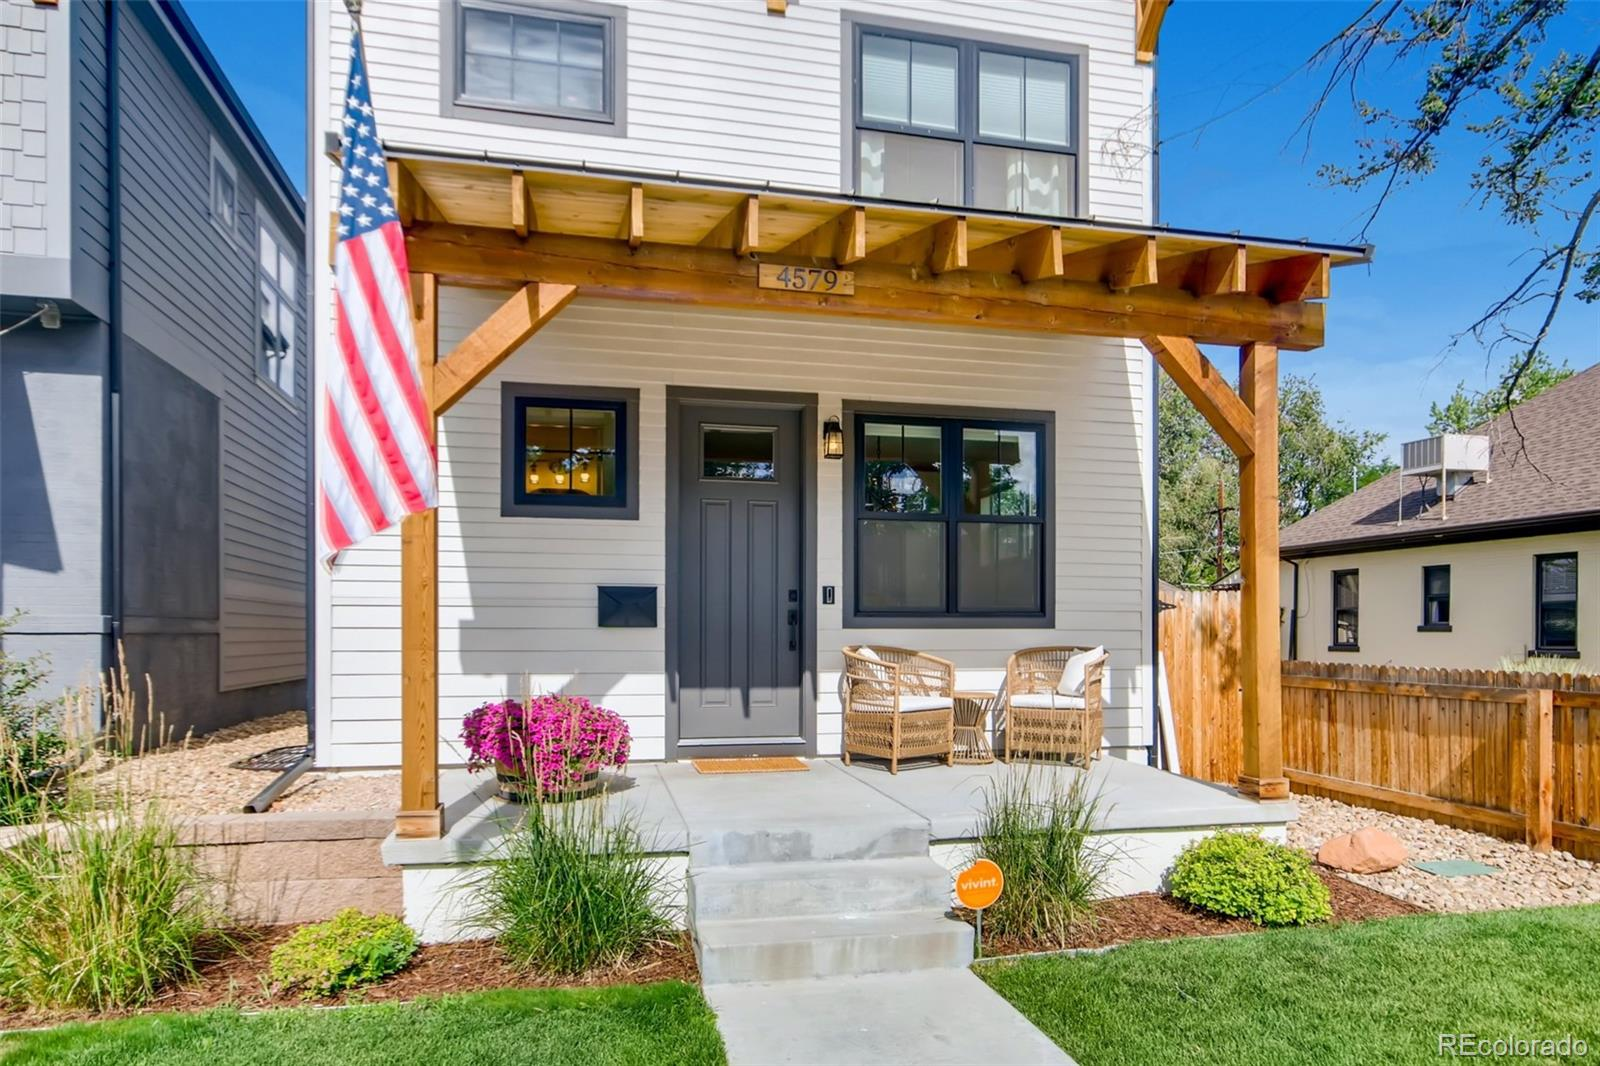 MLS# 7320959 - 2 - 4579 Vrain Street, Denver, CO 80212